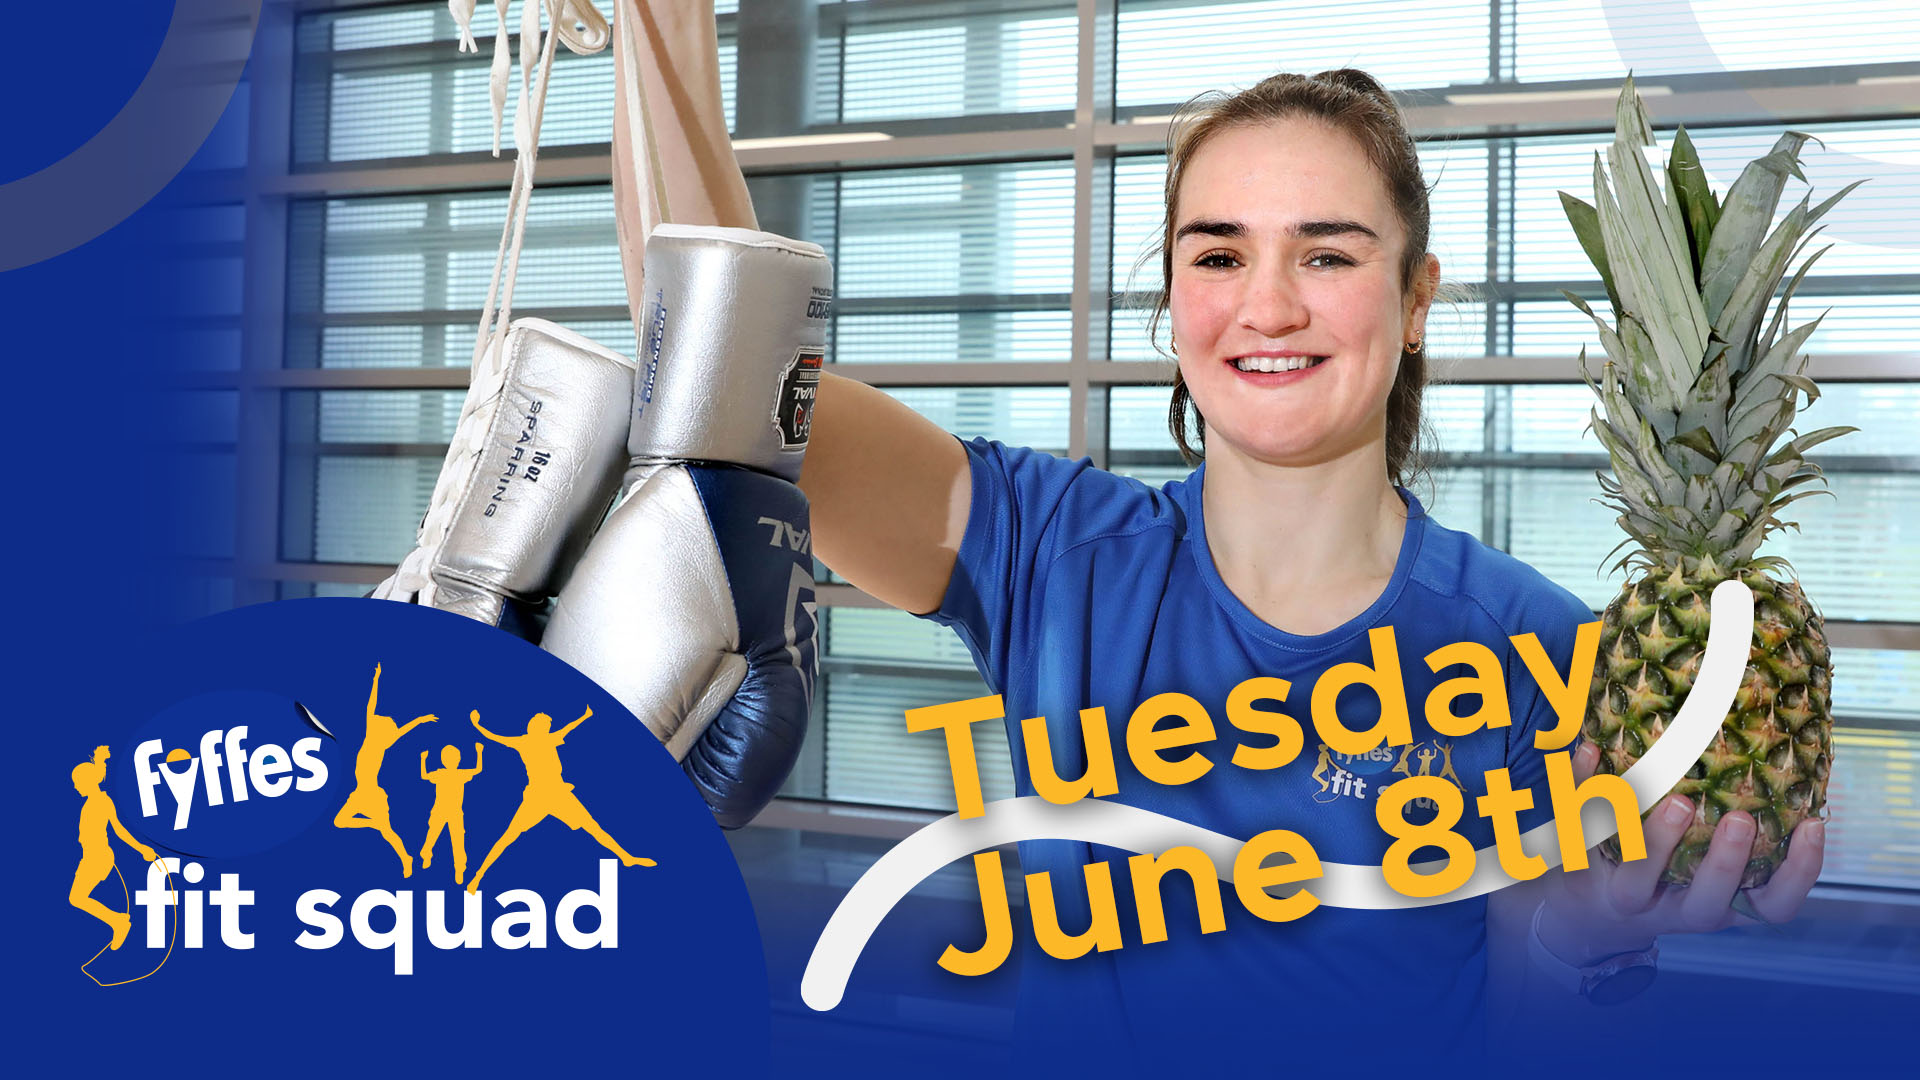 Fyffes Fit Squad Week 12 | Tuesday, June 8th 2021